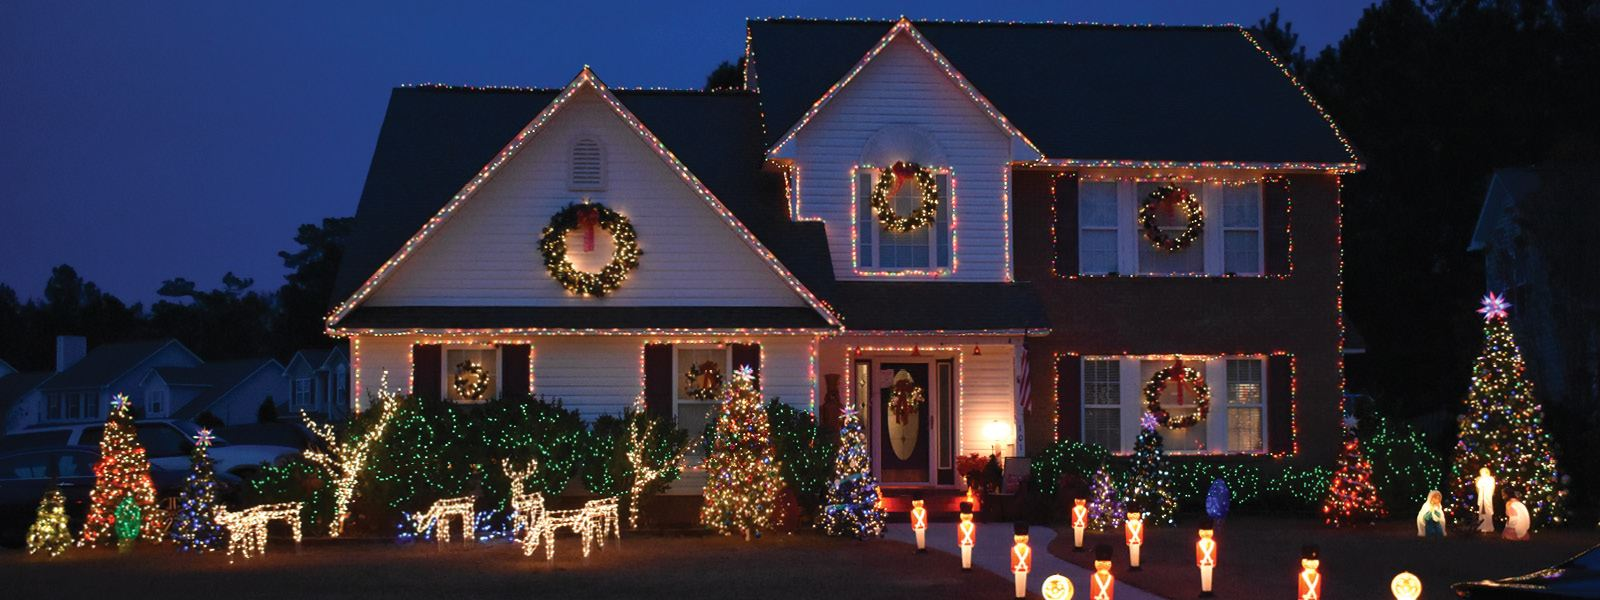 Holiday Home Decorating Contest, Nominate by December 16